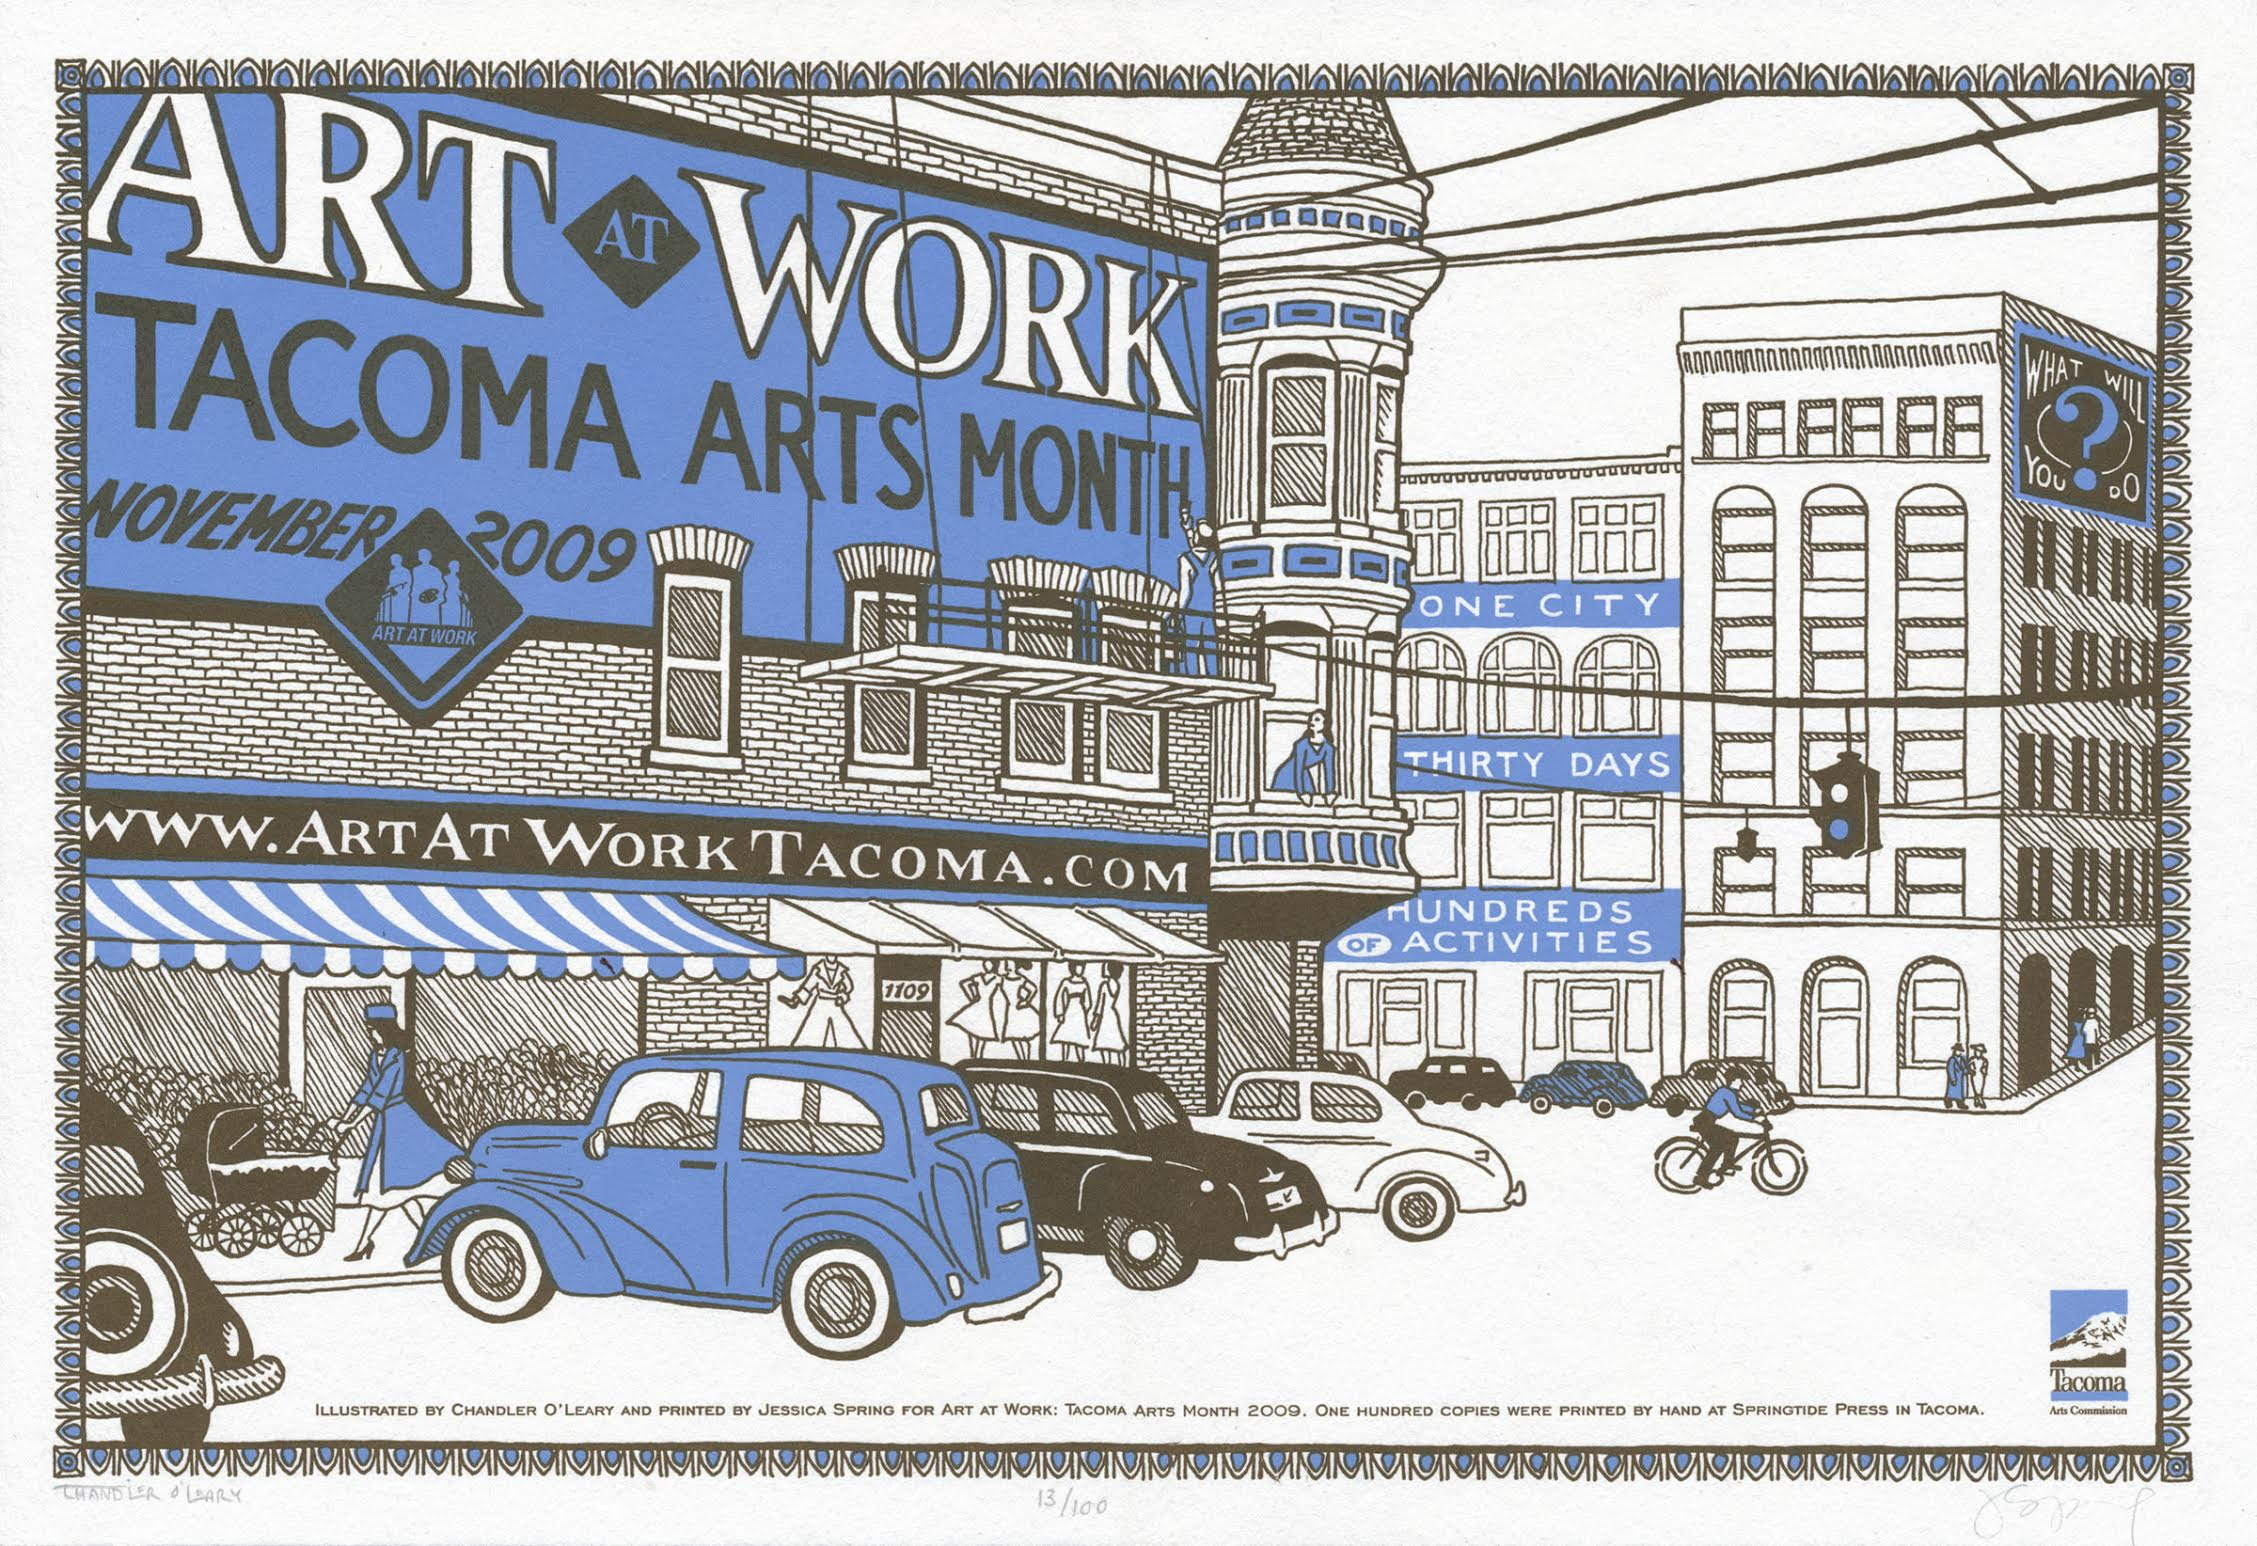 """Art At Work"" posted commissioned by the City of Tacoma. Letterpress printed by Jessica Spring."